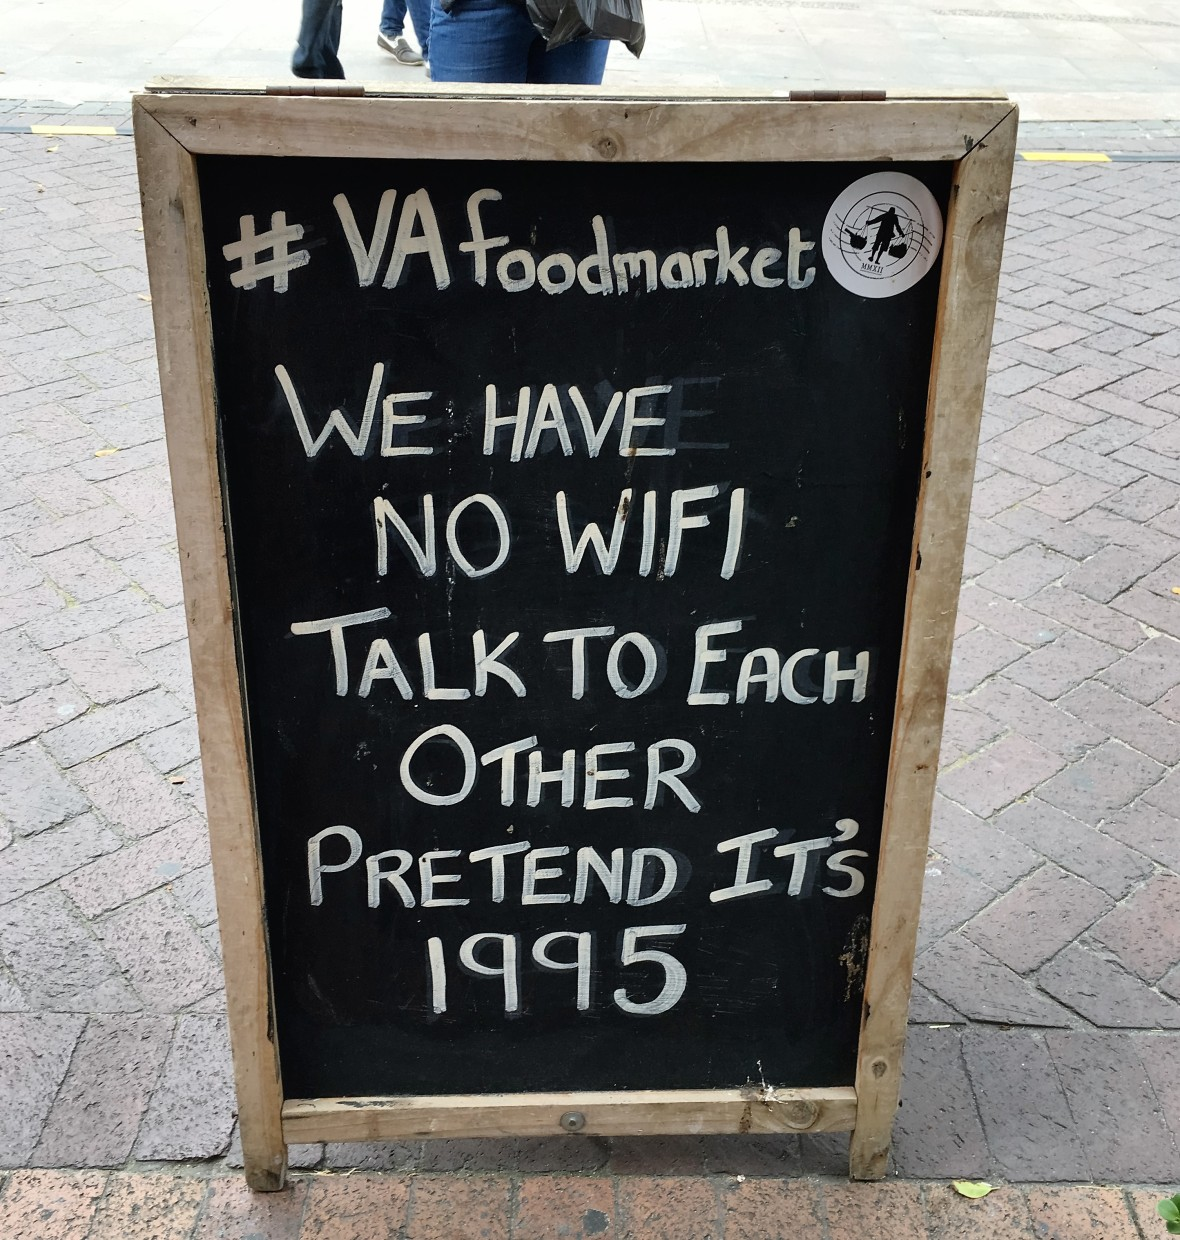 wi-fi-sign-va-food-market-waterfront-cape-town-south-africa